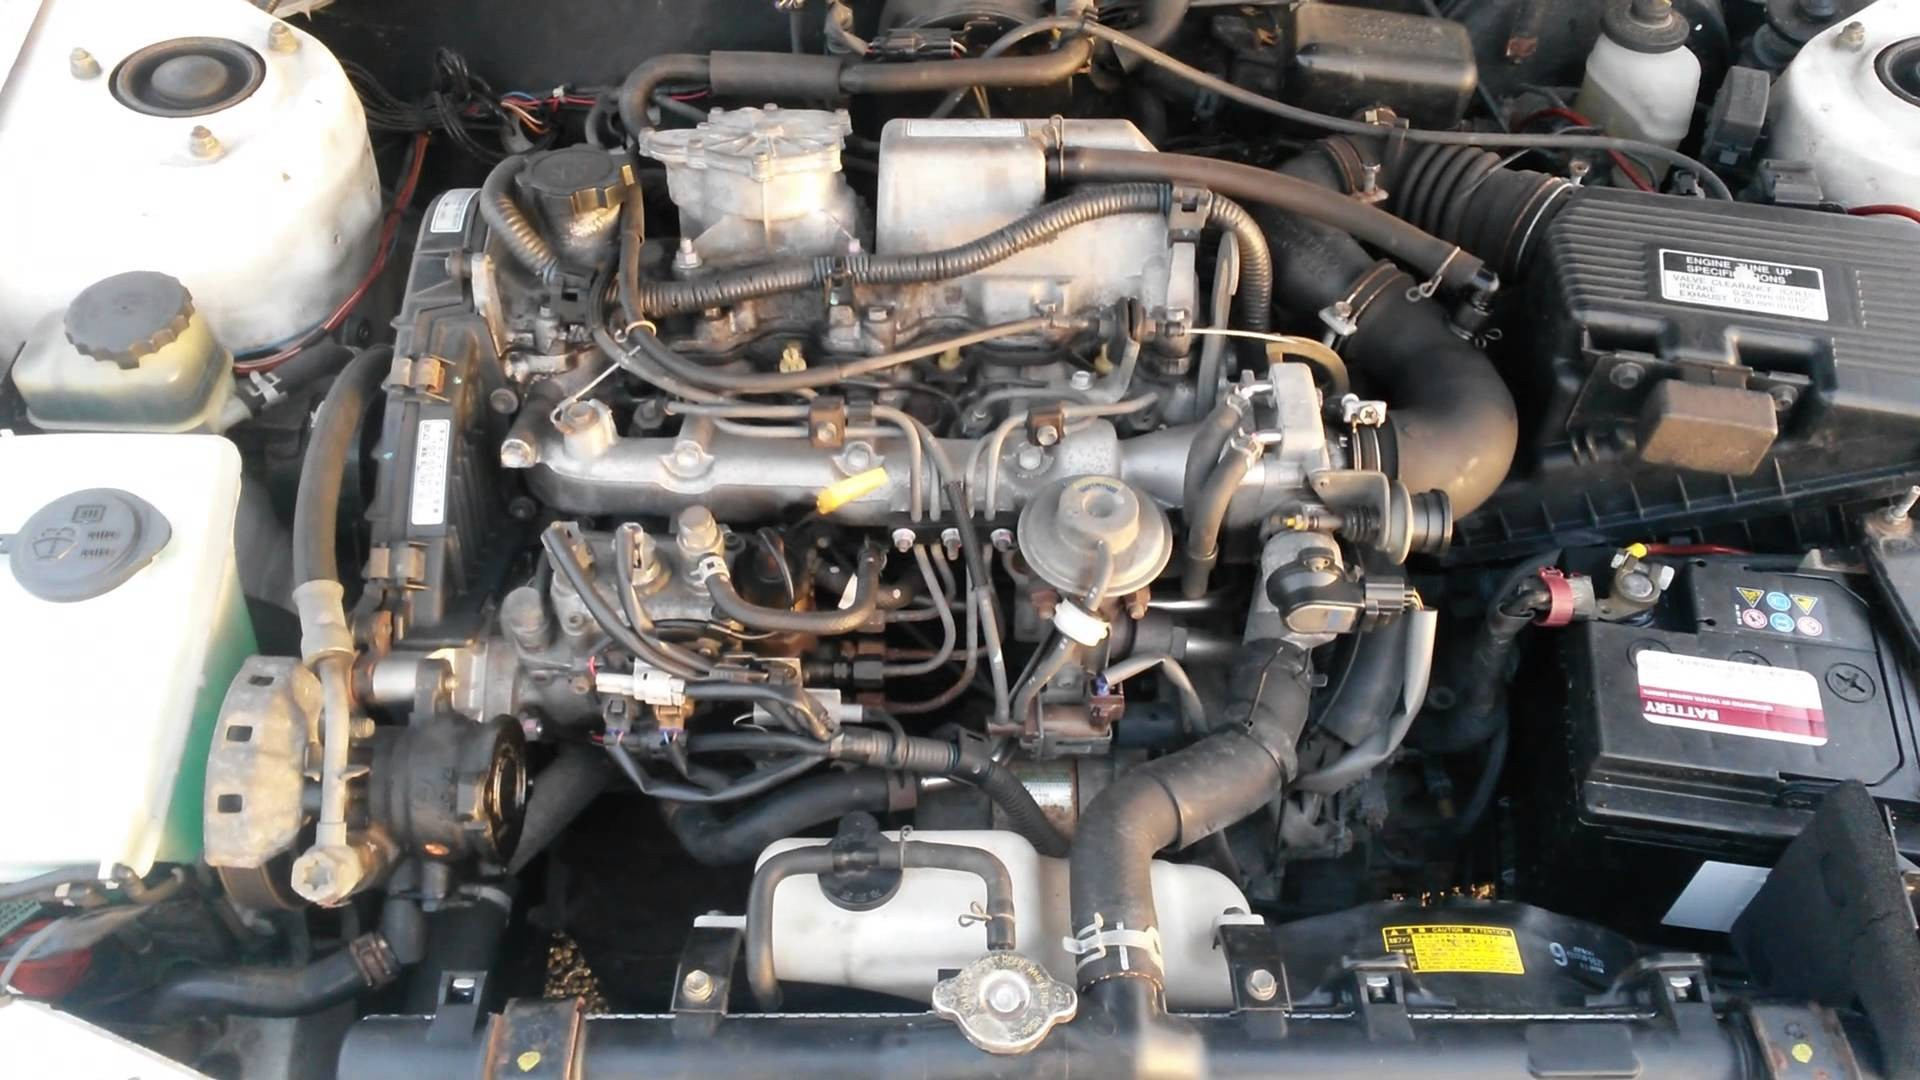 Toyota Corolla Engine Diagram Hot toyota Corolla E11 2 0d 2ce Start Up Specs and Review – toyota